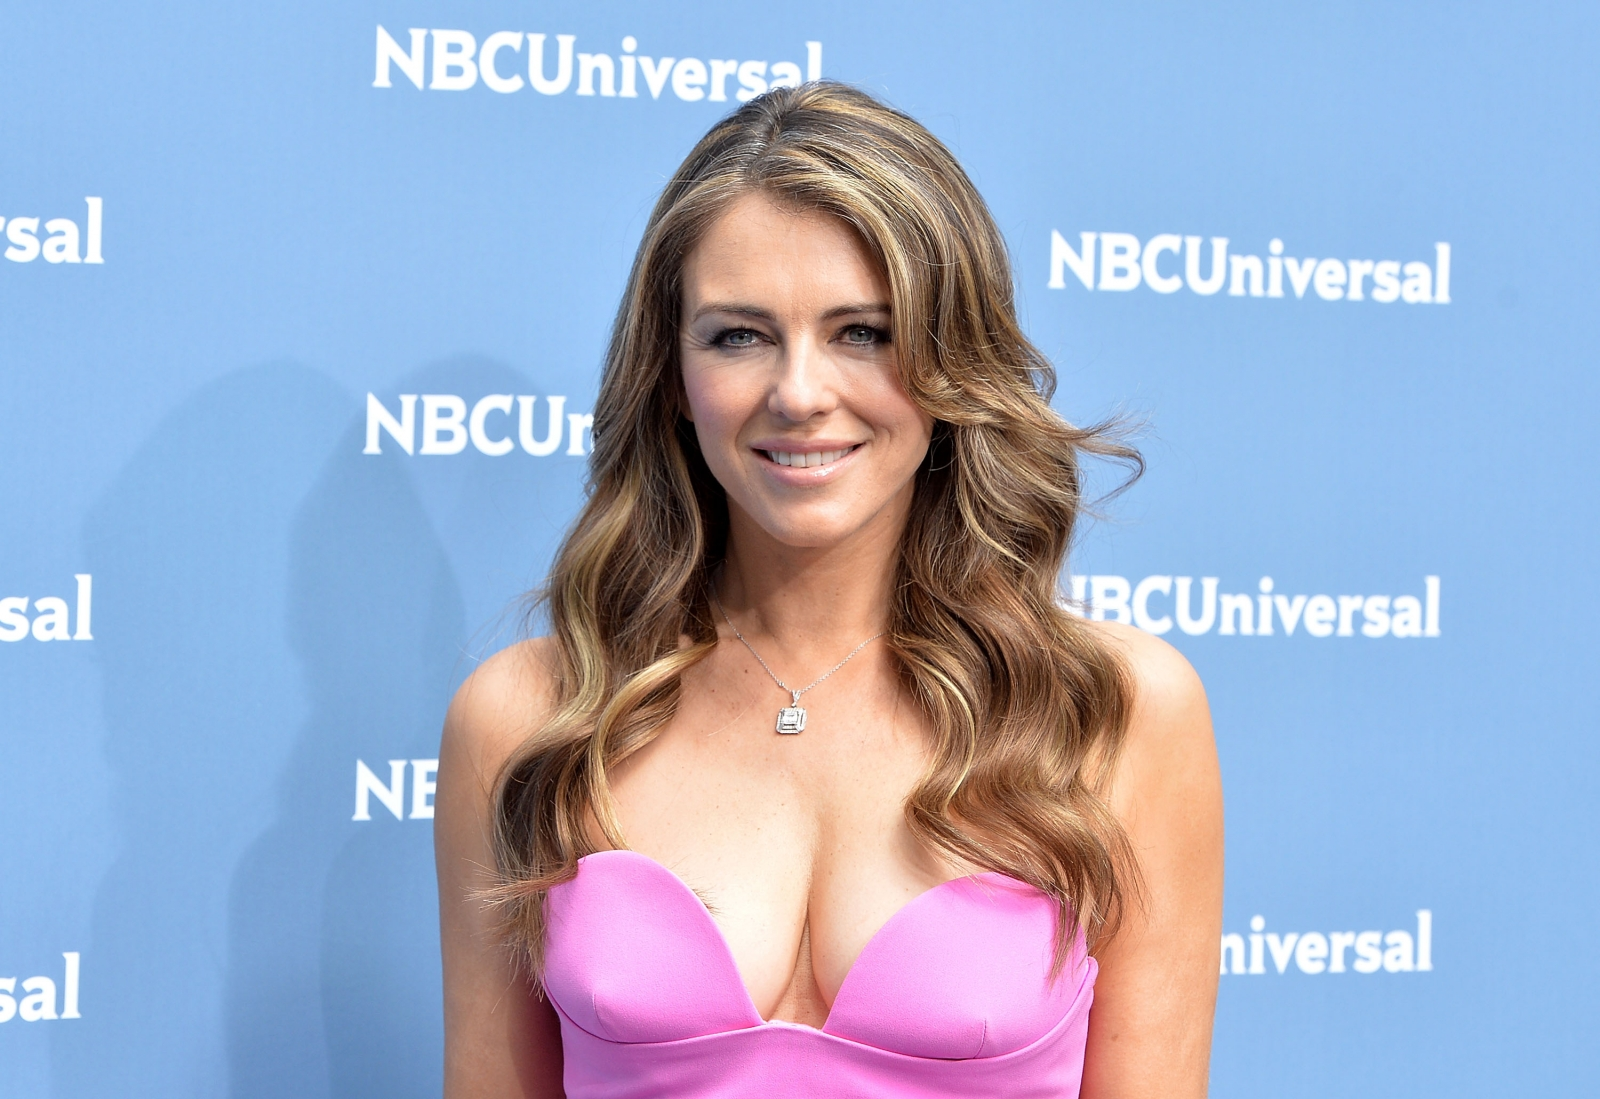 Elizabeth Hurley and David Foster are 'dating': Couple shared 'private flirty moments together'